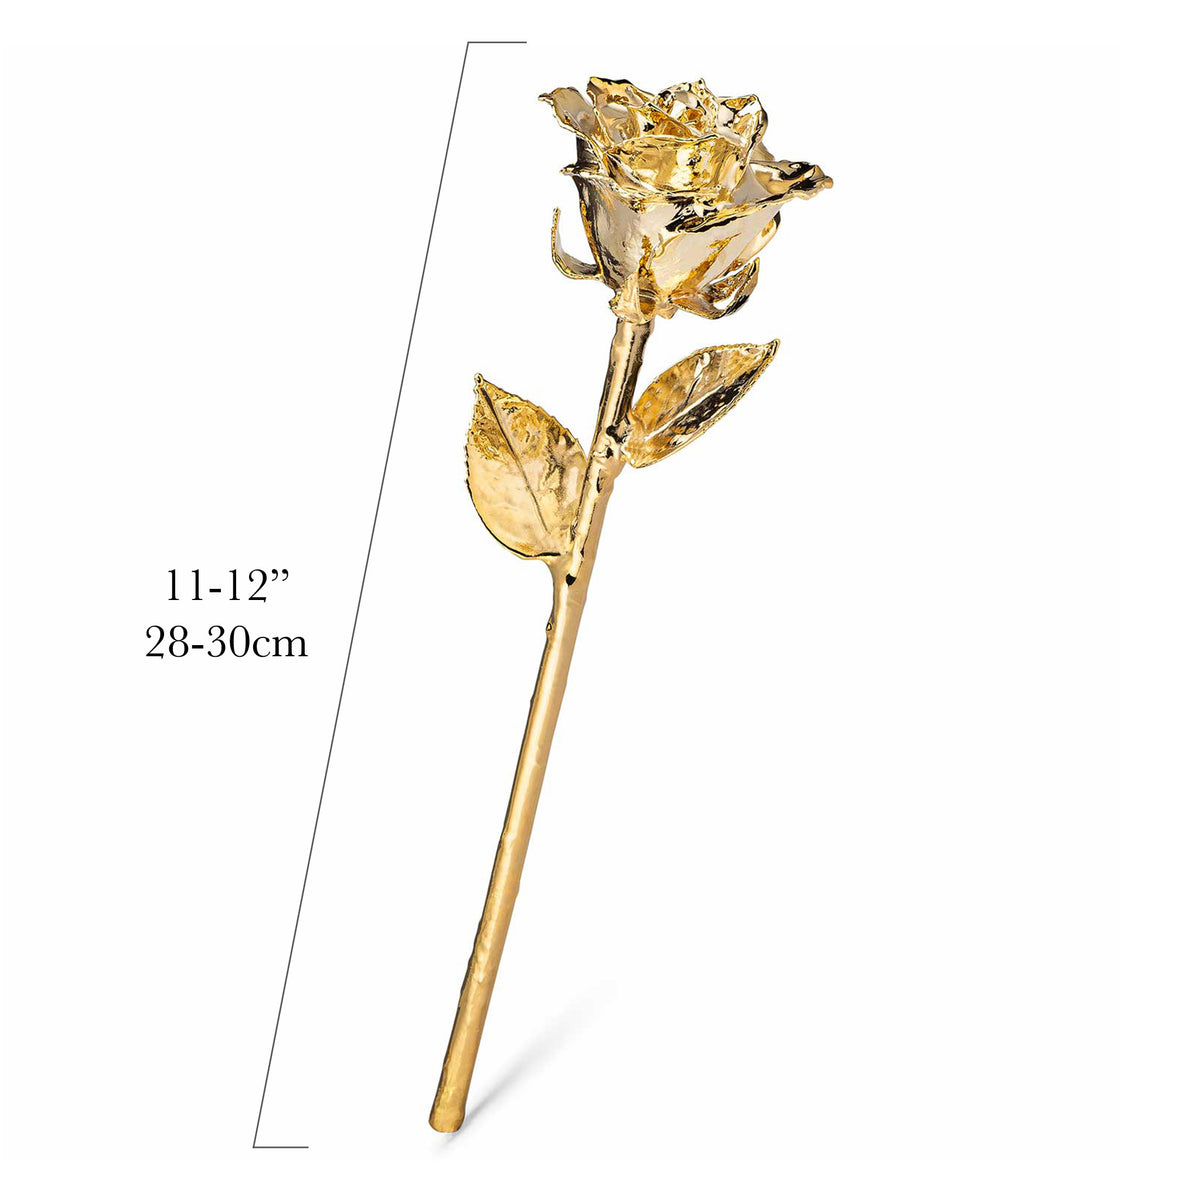 Real 24K Gold Forever Rose. Rose is fully dipped in gold. View shows the rose petals, sepals, stem, and leaves covered in 24 karat gold. The measurements 11 to 12 inches, 28-30 cm are shown.